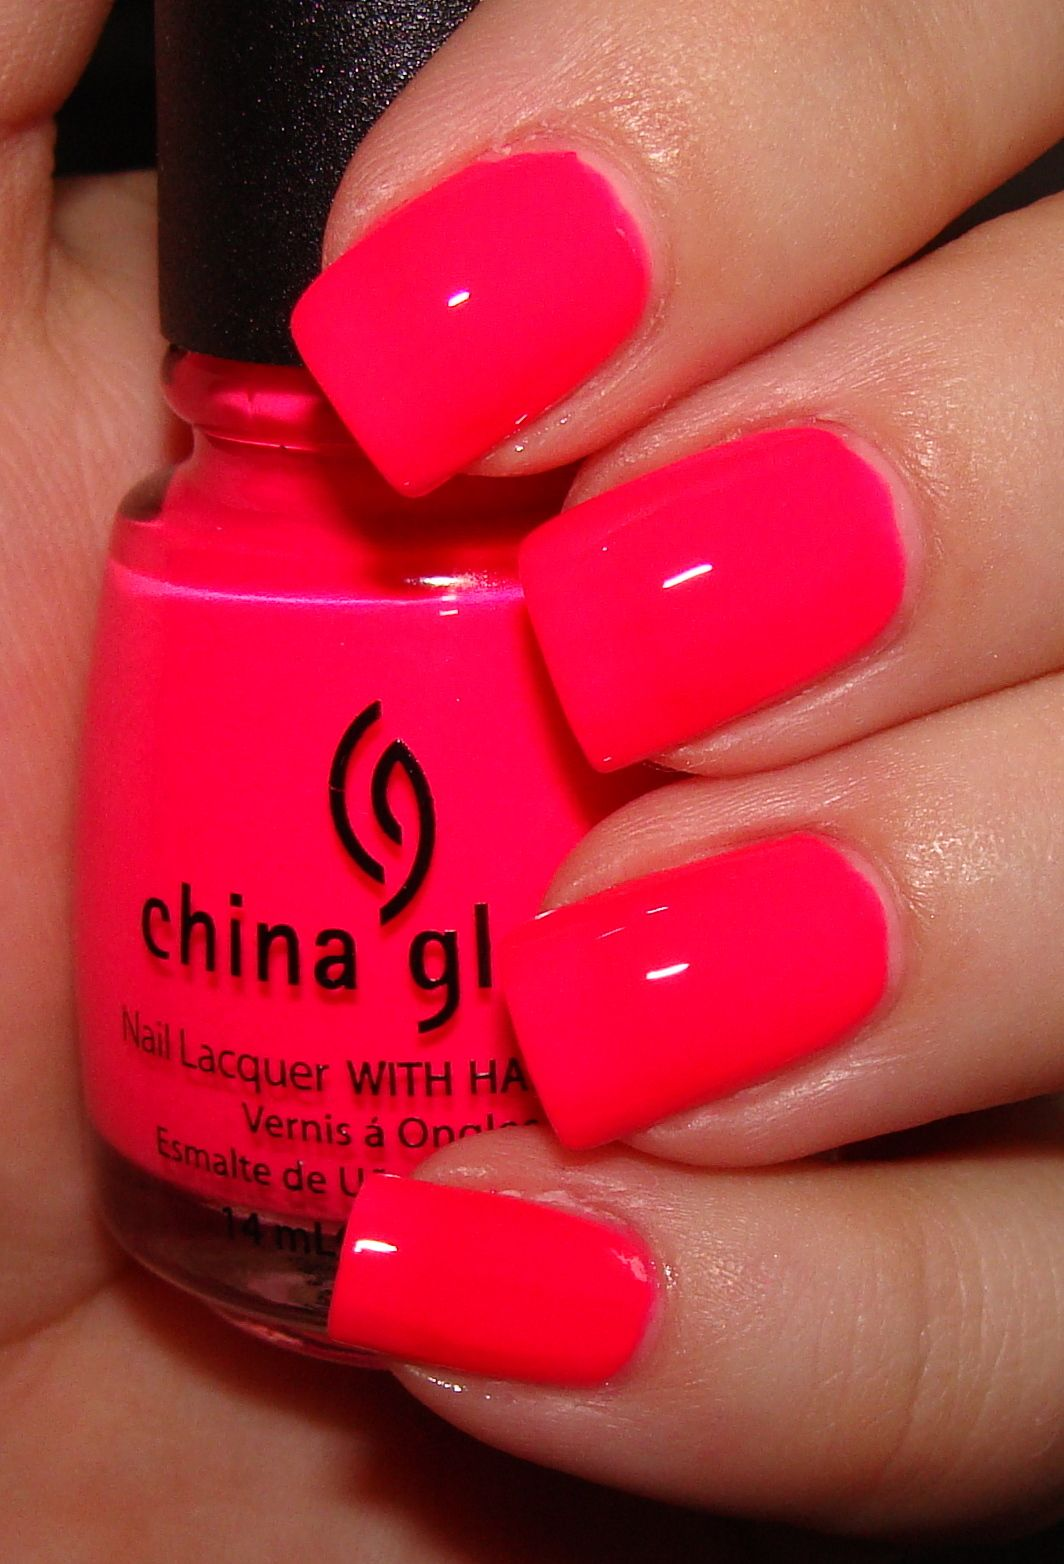 China Glaze Nail Polish - 14ml - Reds & Corals - You Choose ...